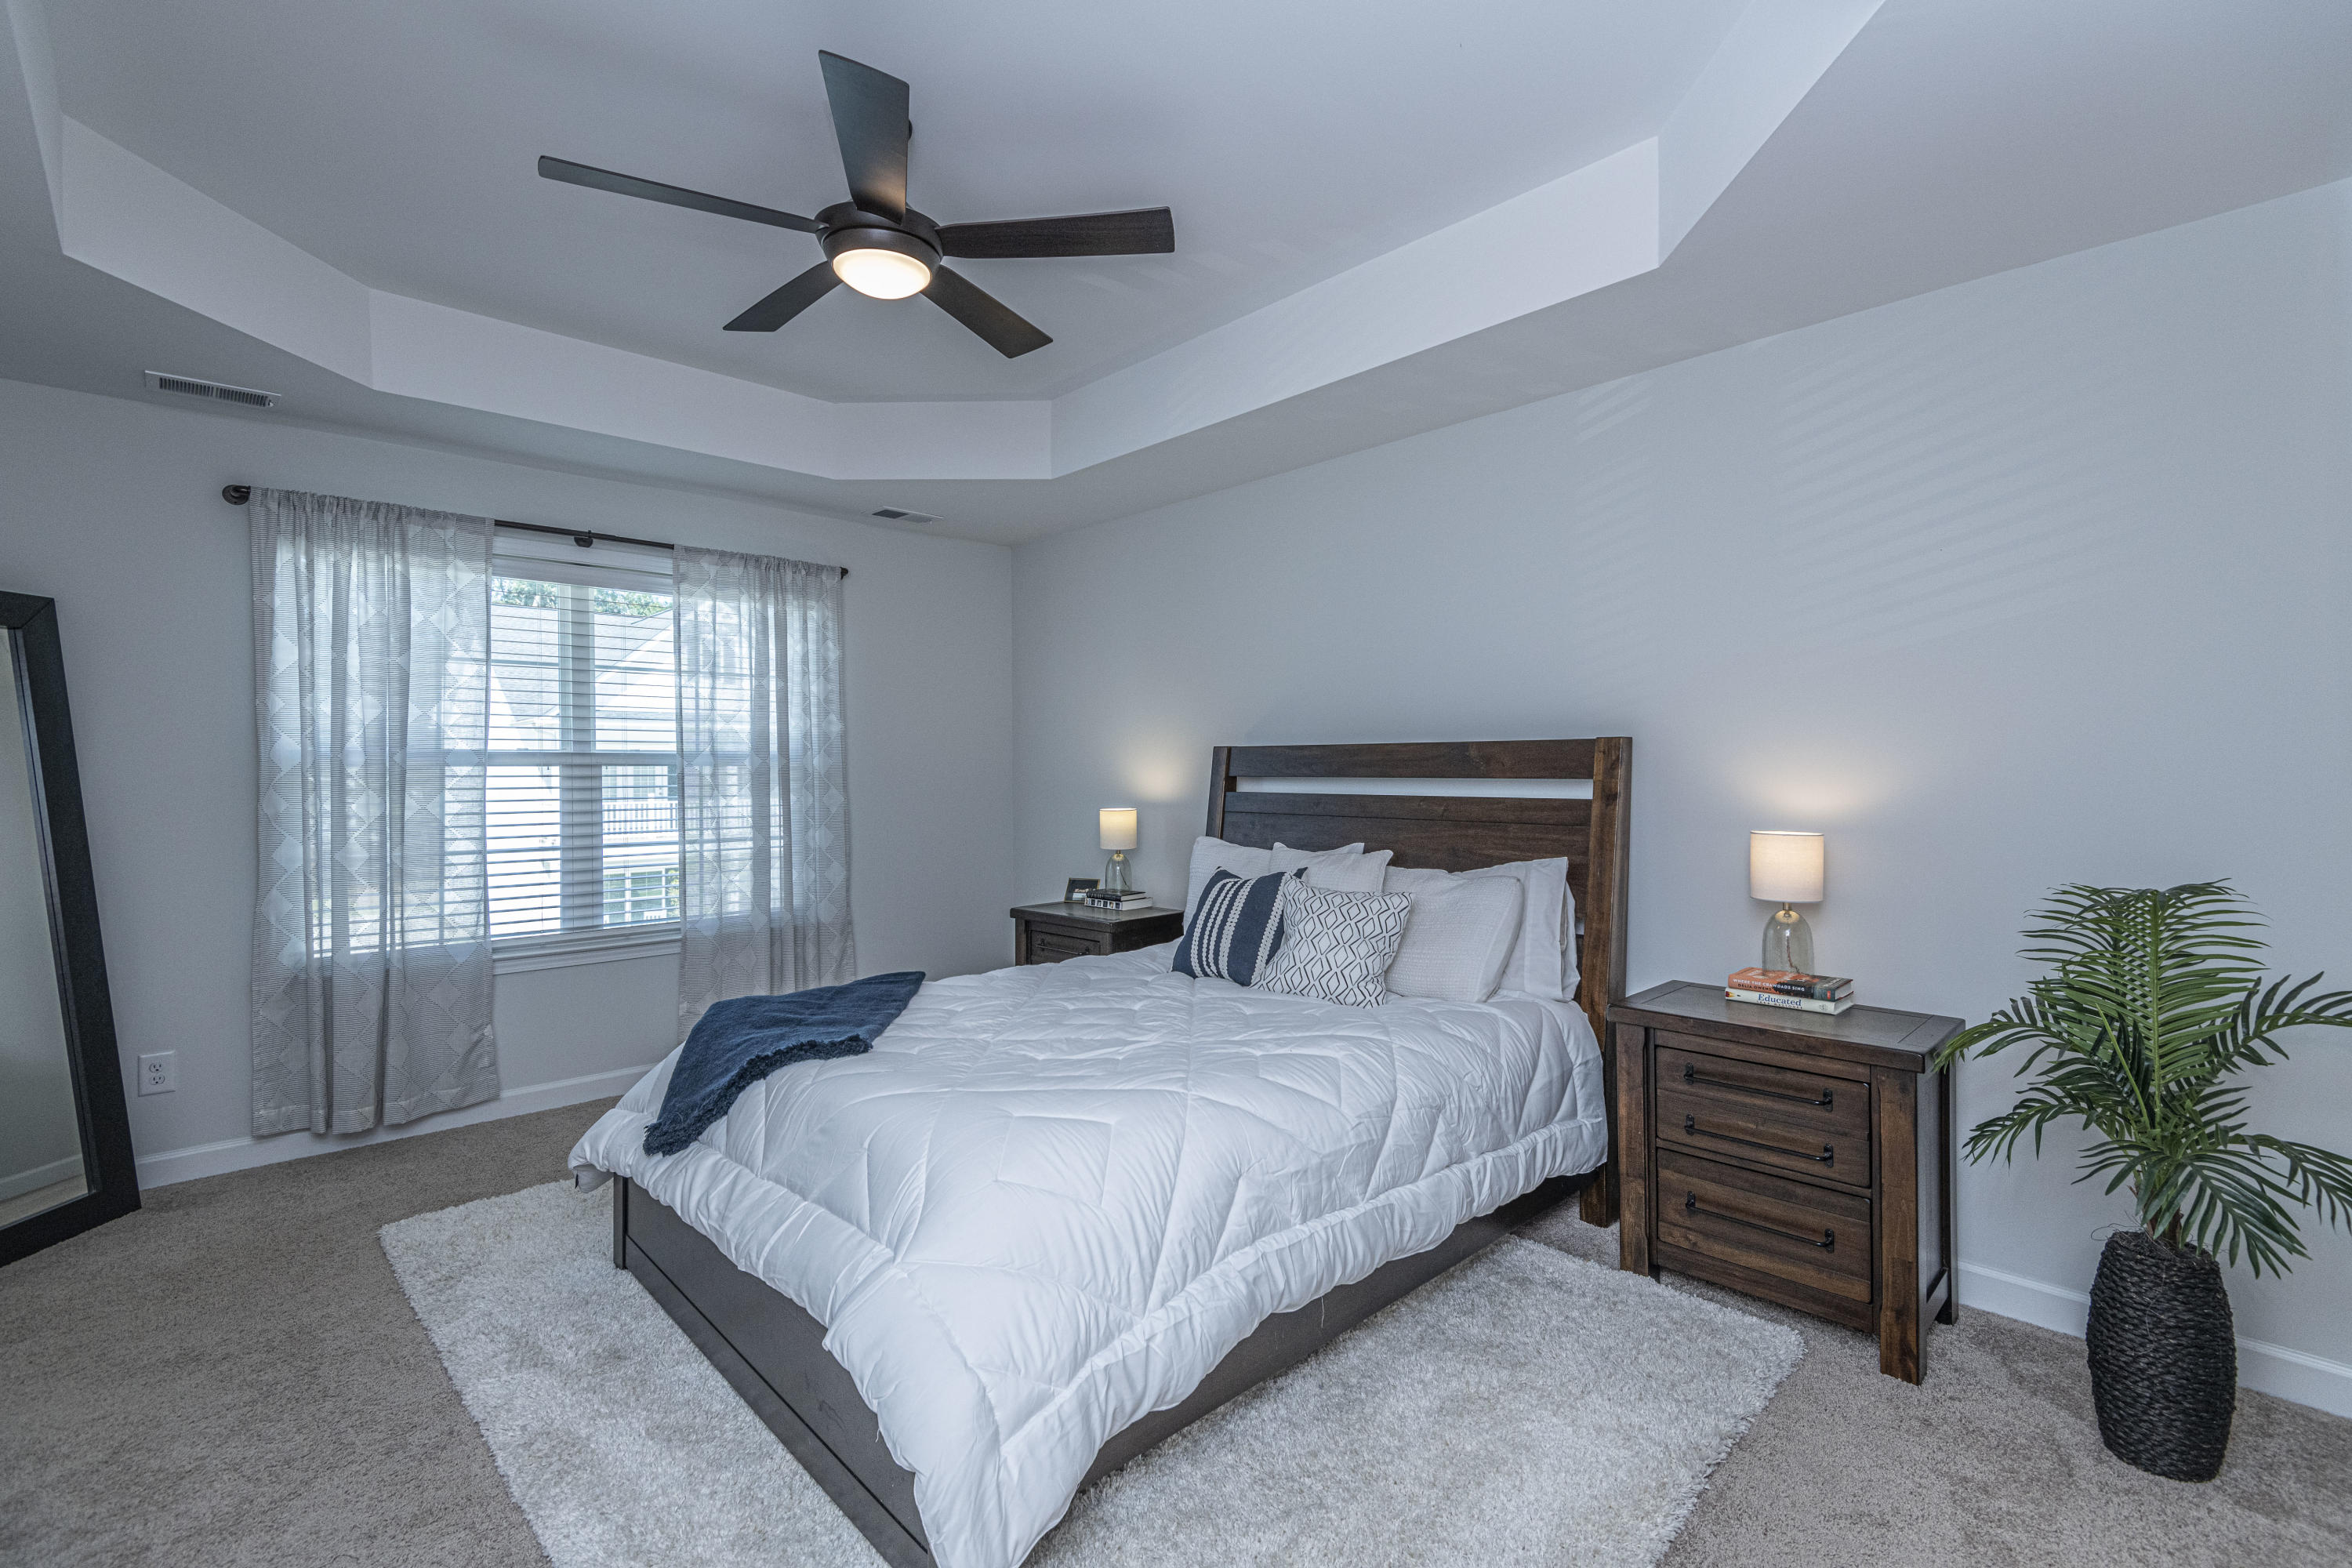 The Oaks at St Johns Crossing Homes For Sale - 1692 Emmets, Johns Island, SC - 28